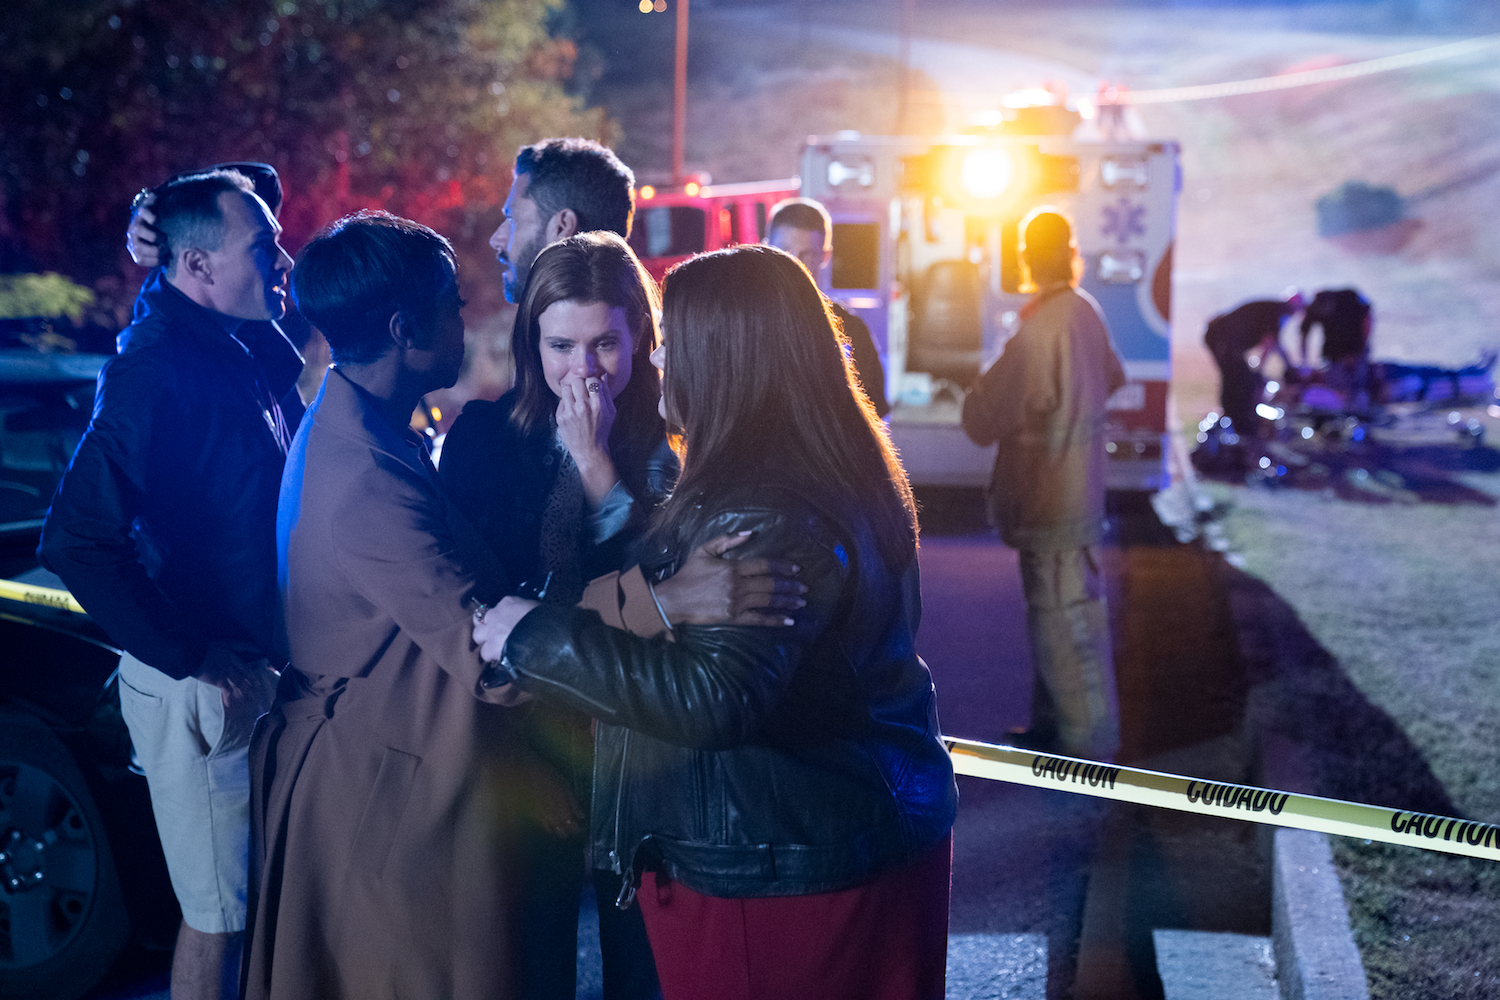 Crying JoAnna Garcia is embraced by her friends at the scene of a car accident in Sweet Magnolias